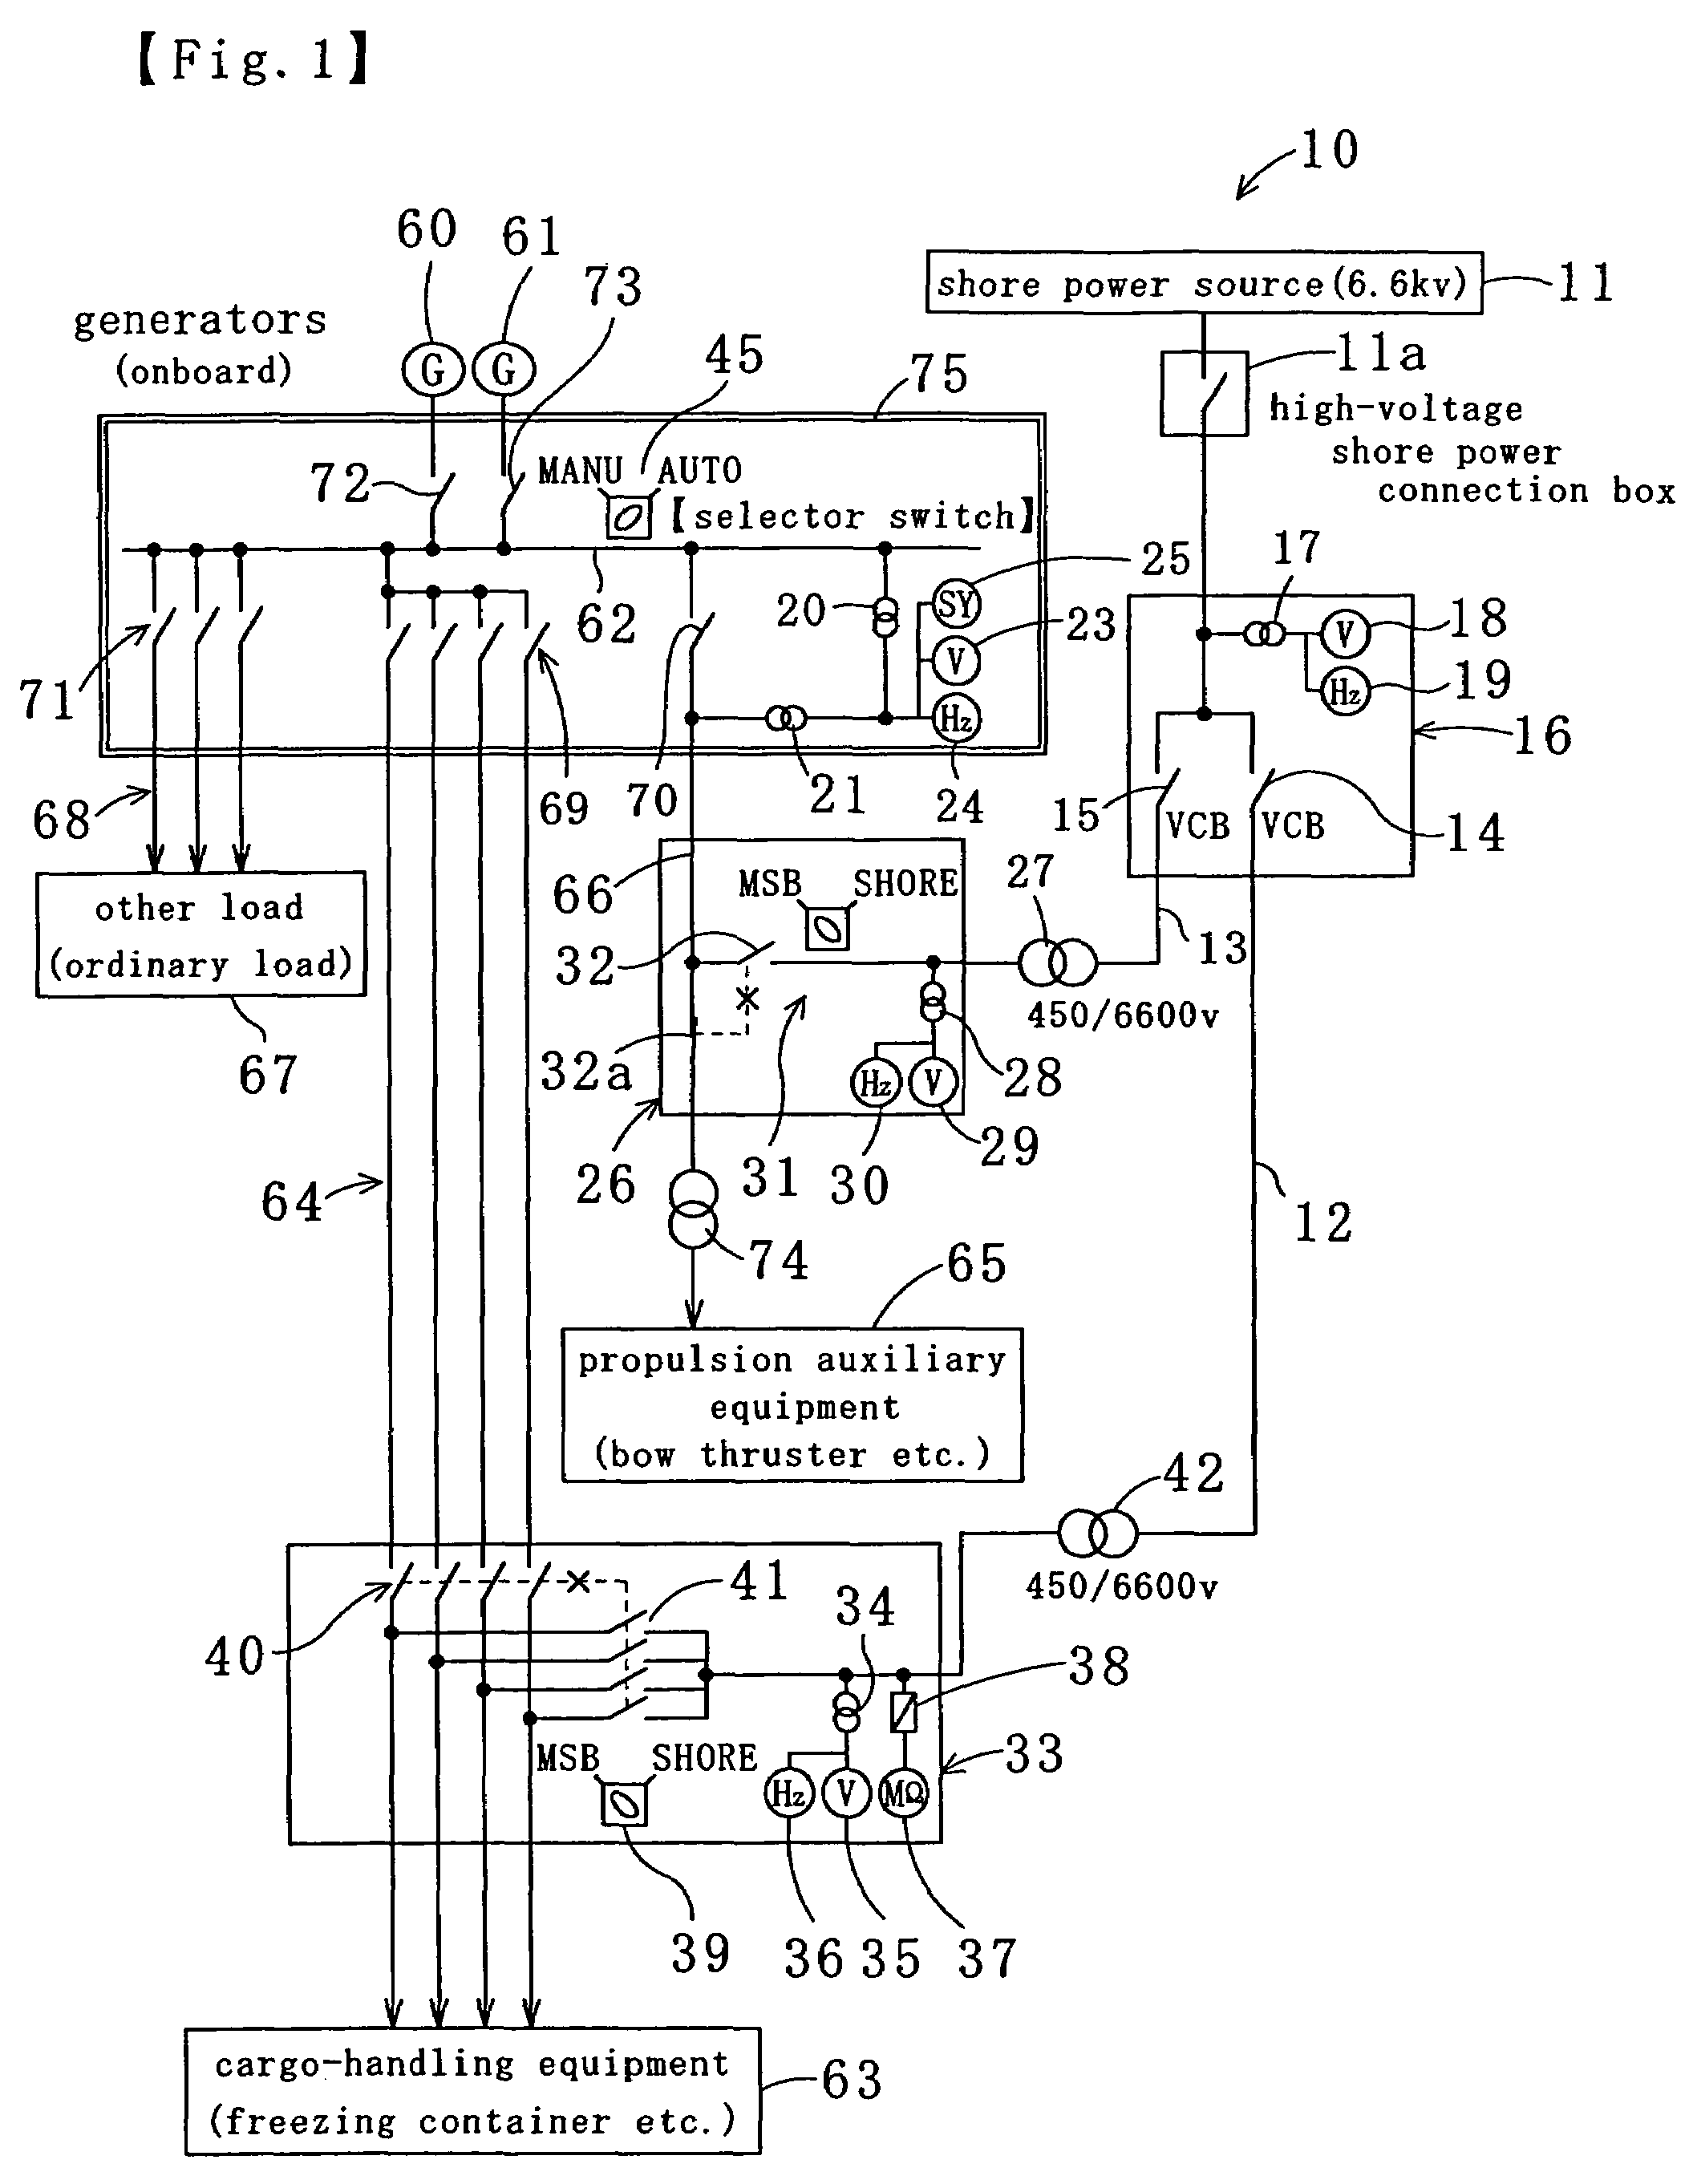 shore power wiring diagram vcb panel wiring diagram vcb image wiring diagram patent us7253538 method of supplying electric power from